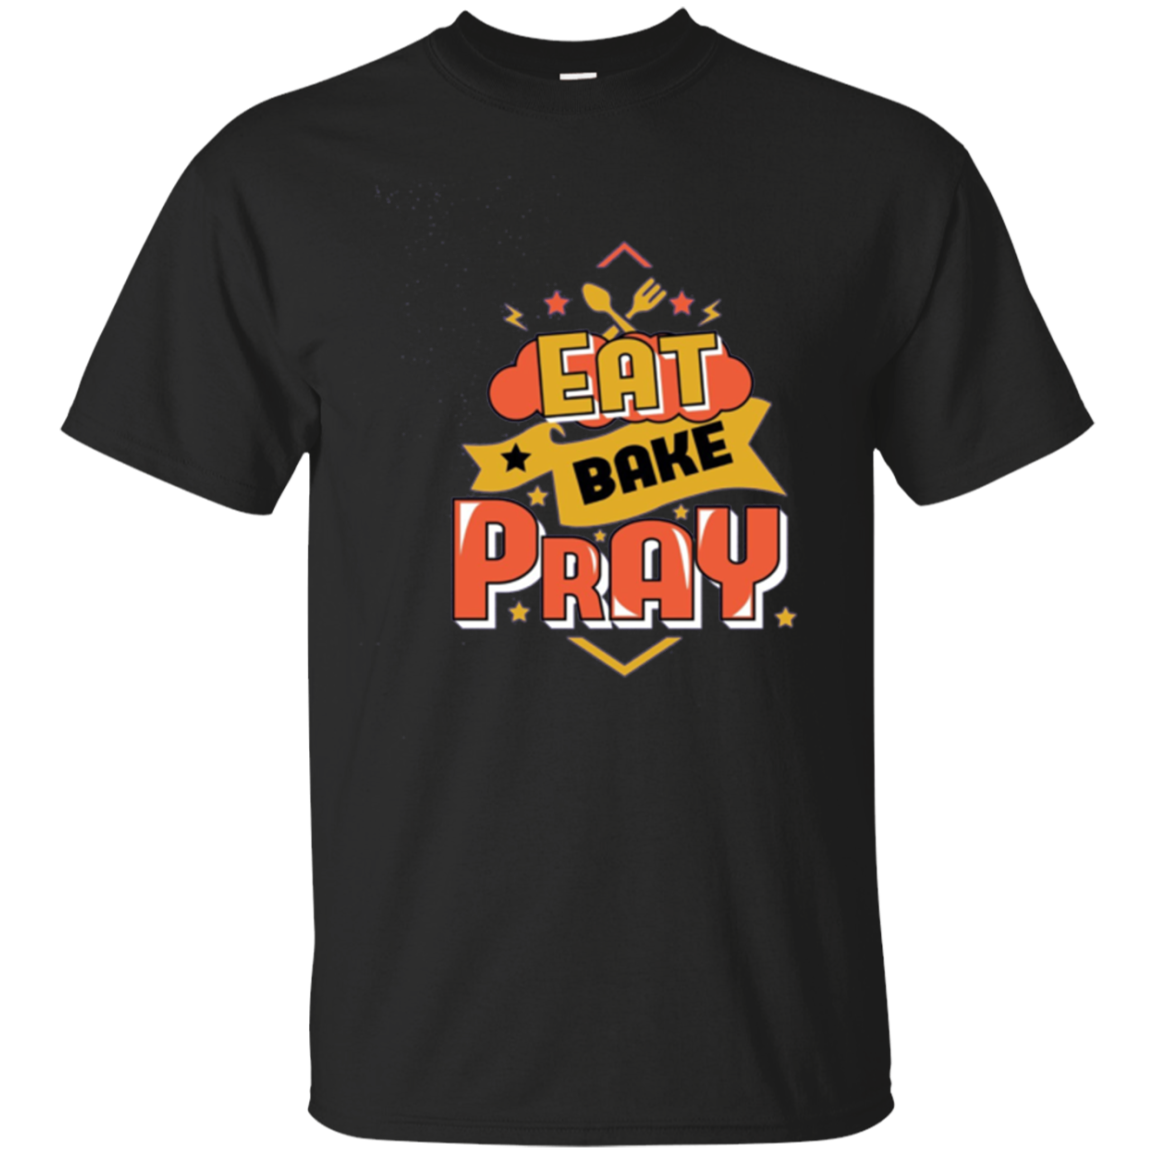 Eat, Bake, Pray Faith Hope Spiritual Hobby T-Shirt